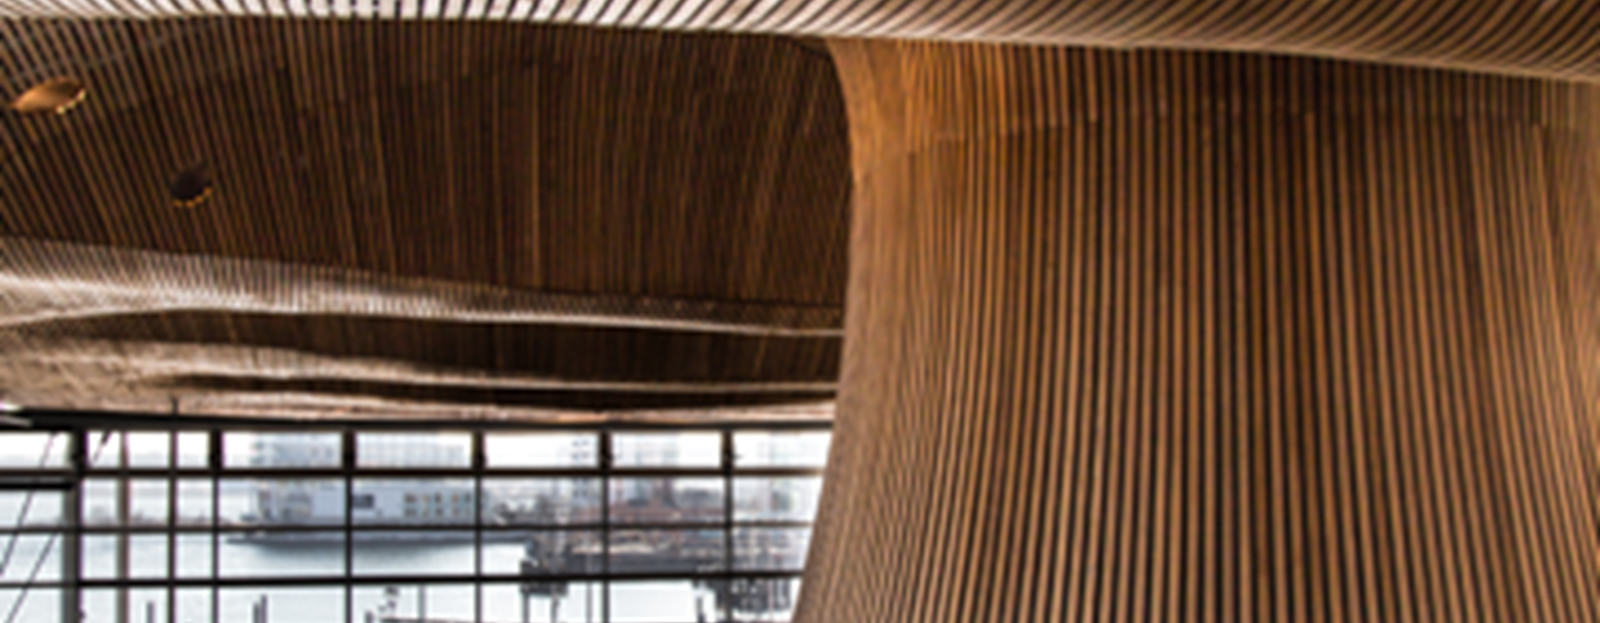 Inside the Senedd